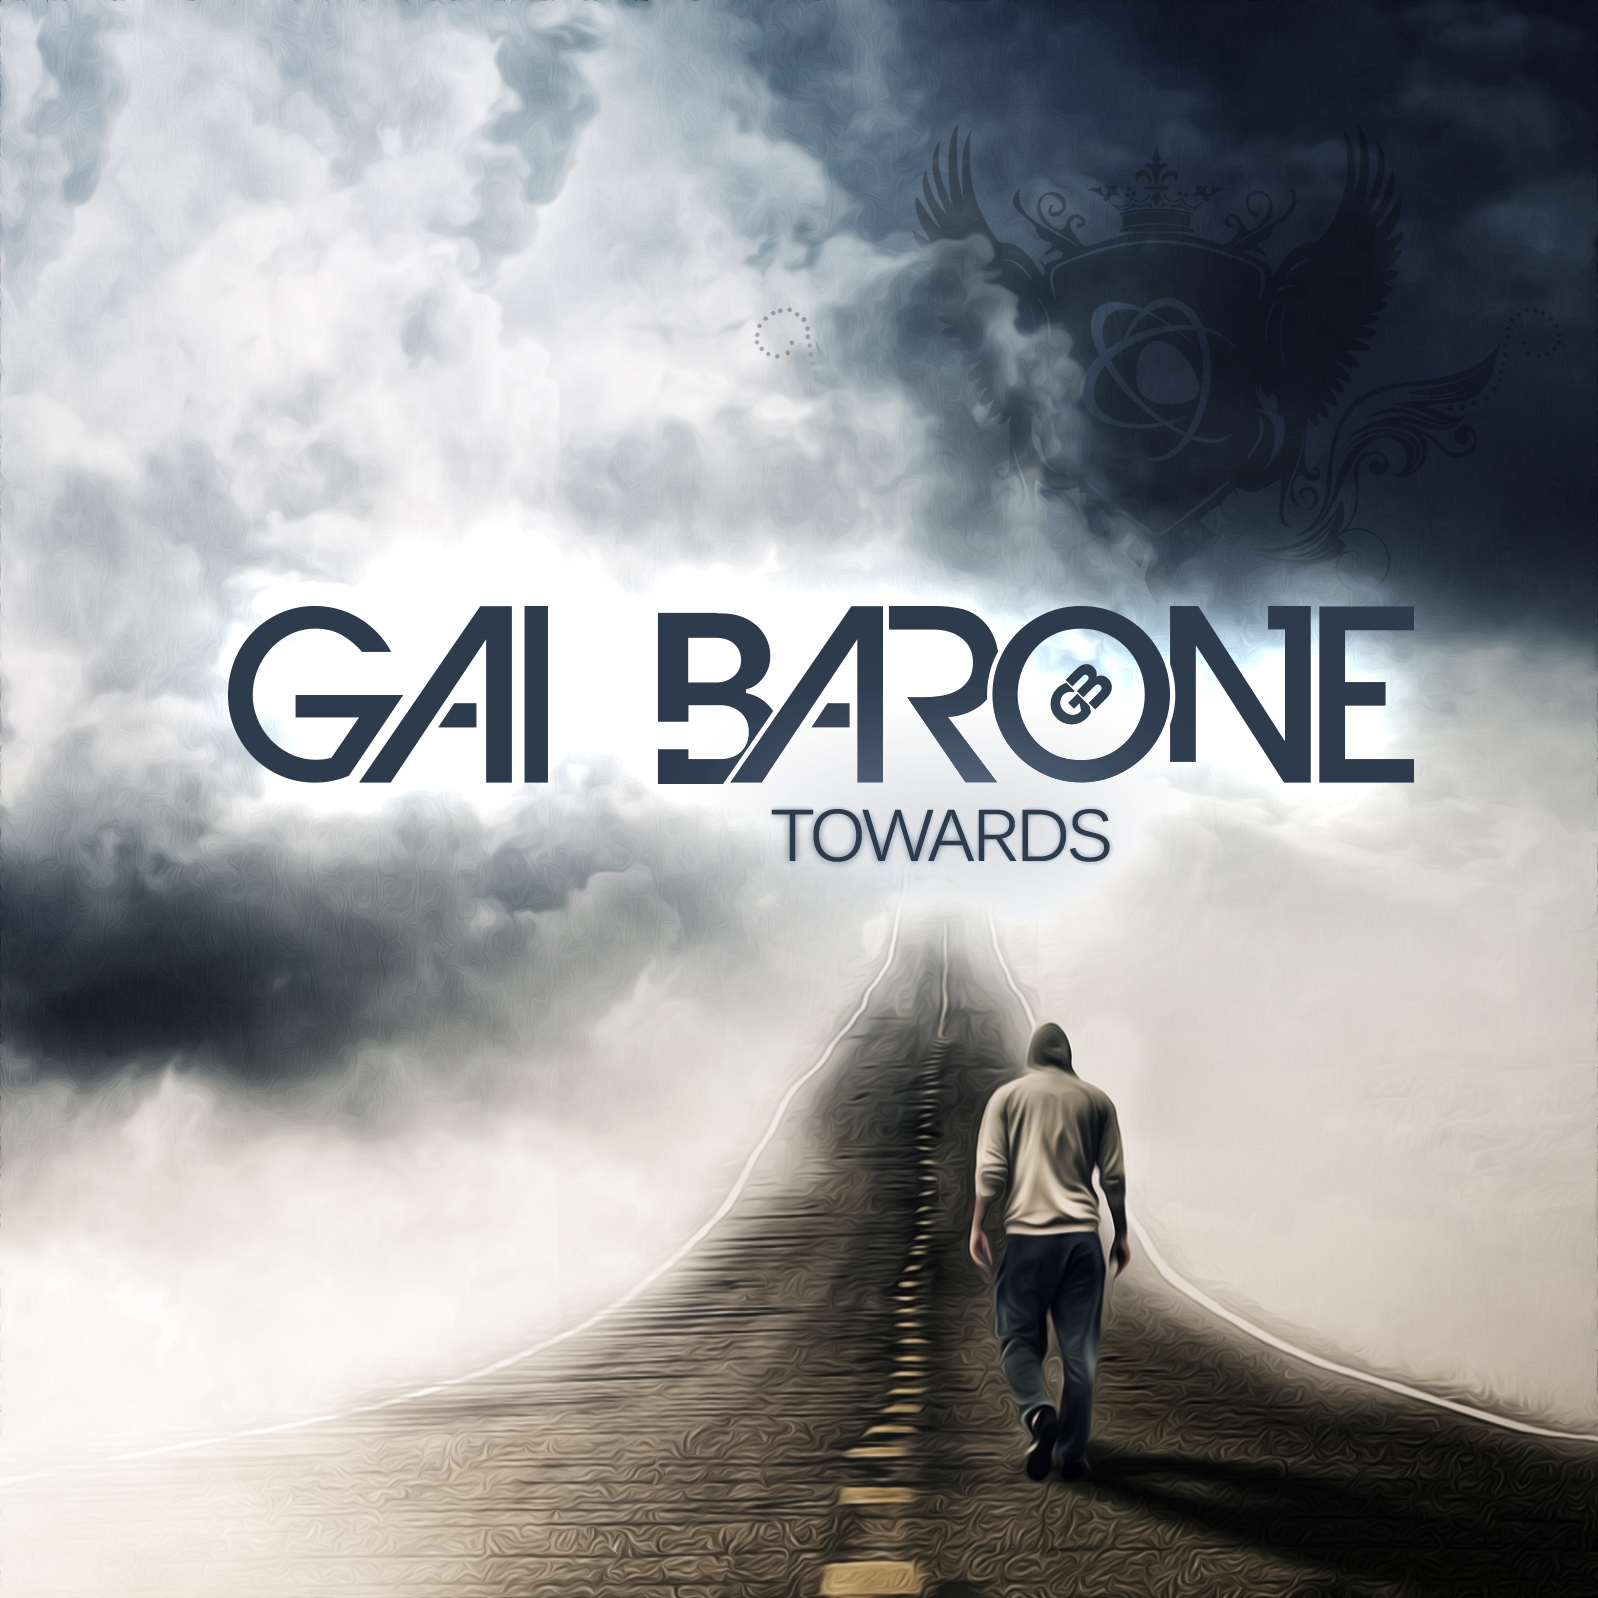 Gai Barone - Towards